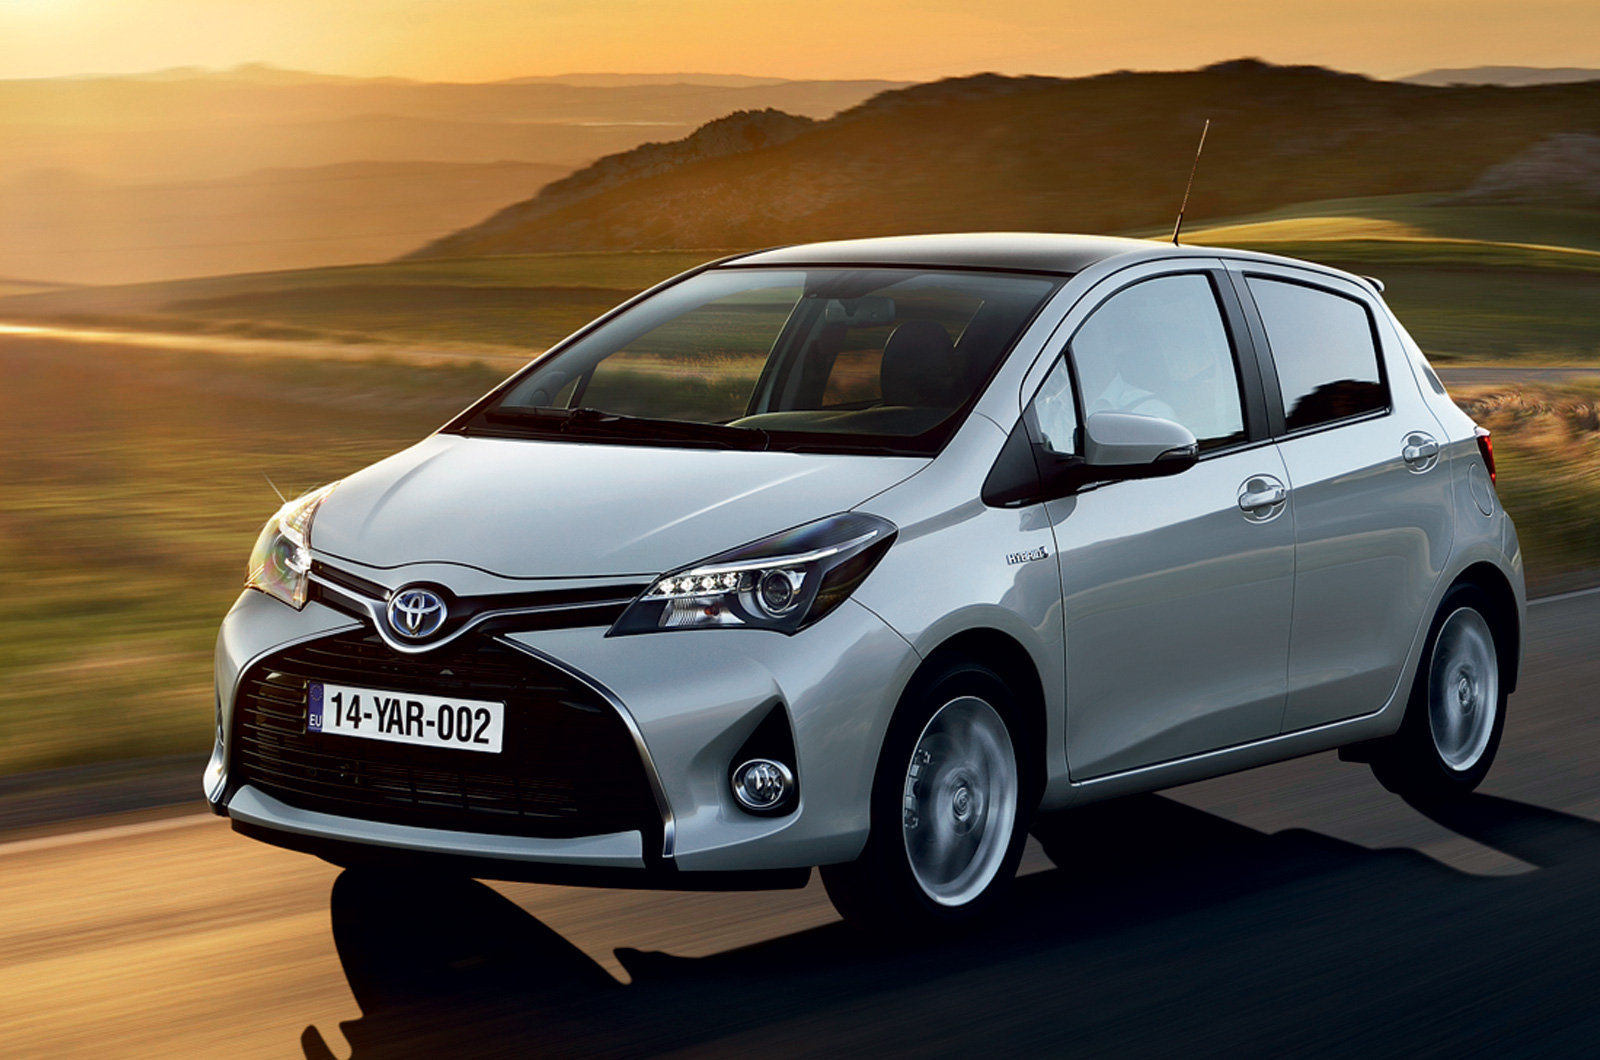 toyota yaris facelift unveiled autocar india. Black Bedroom Furniture Sets. Home Design Ideas